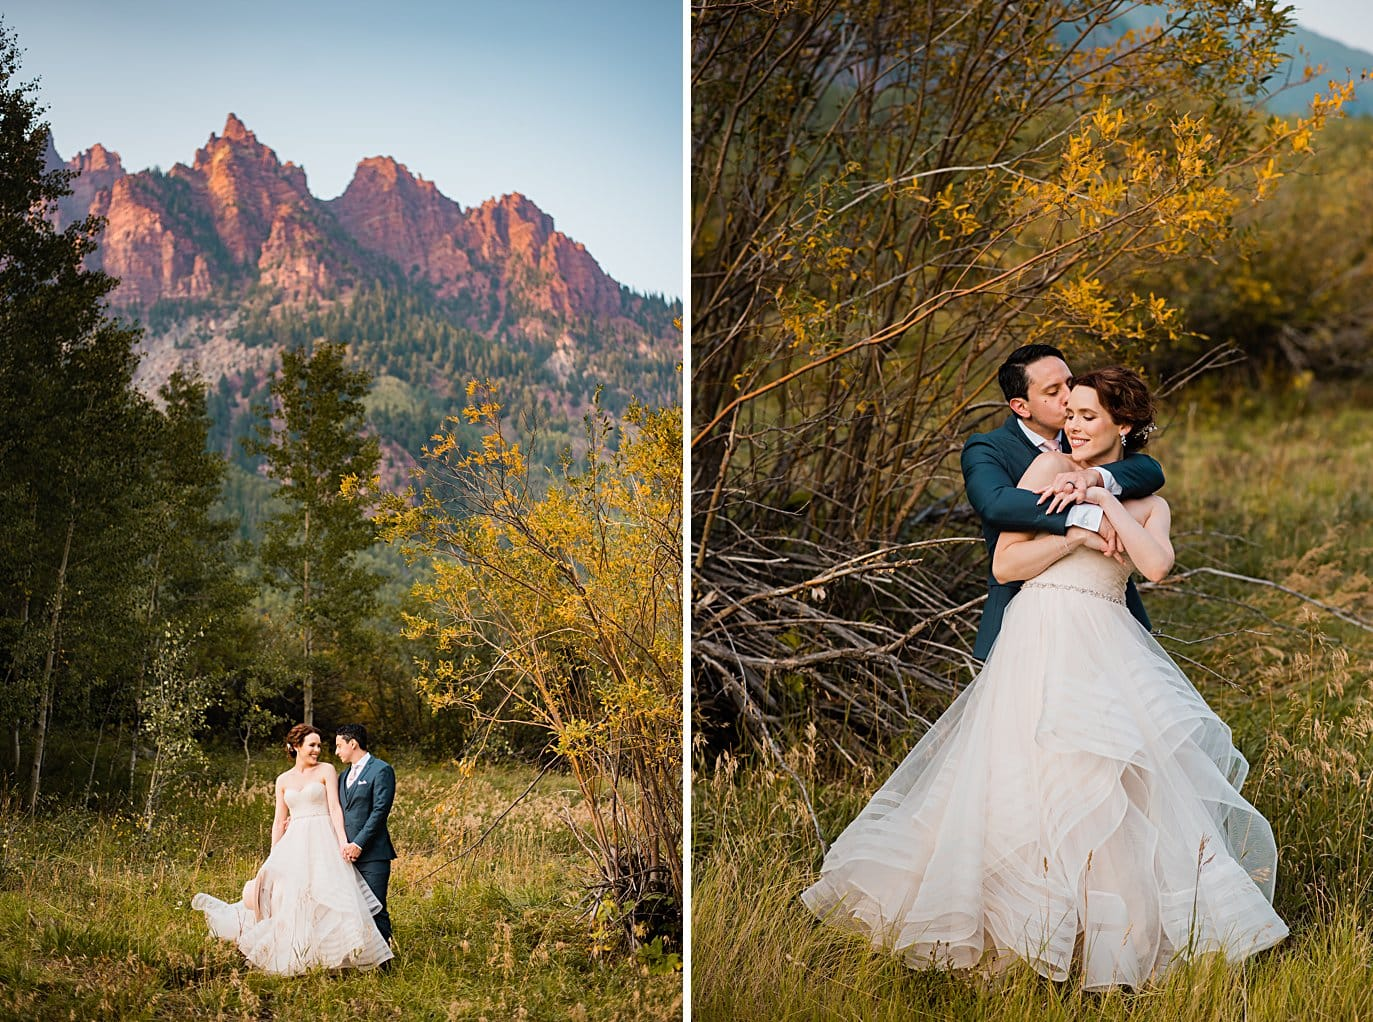 bride and groom in front of red peaks at fall Maroon Bells wedding by Snowmass wedding photographer Jennie Crate